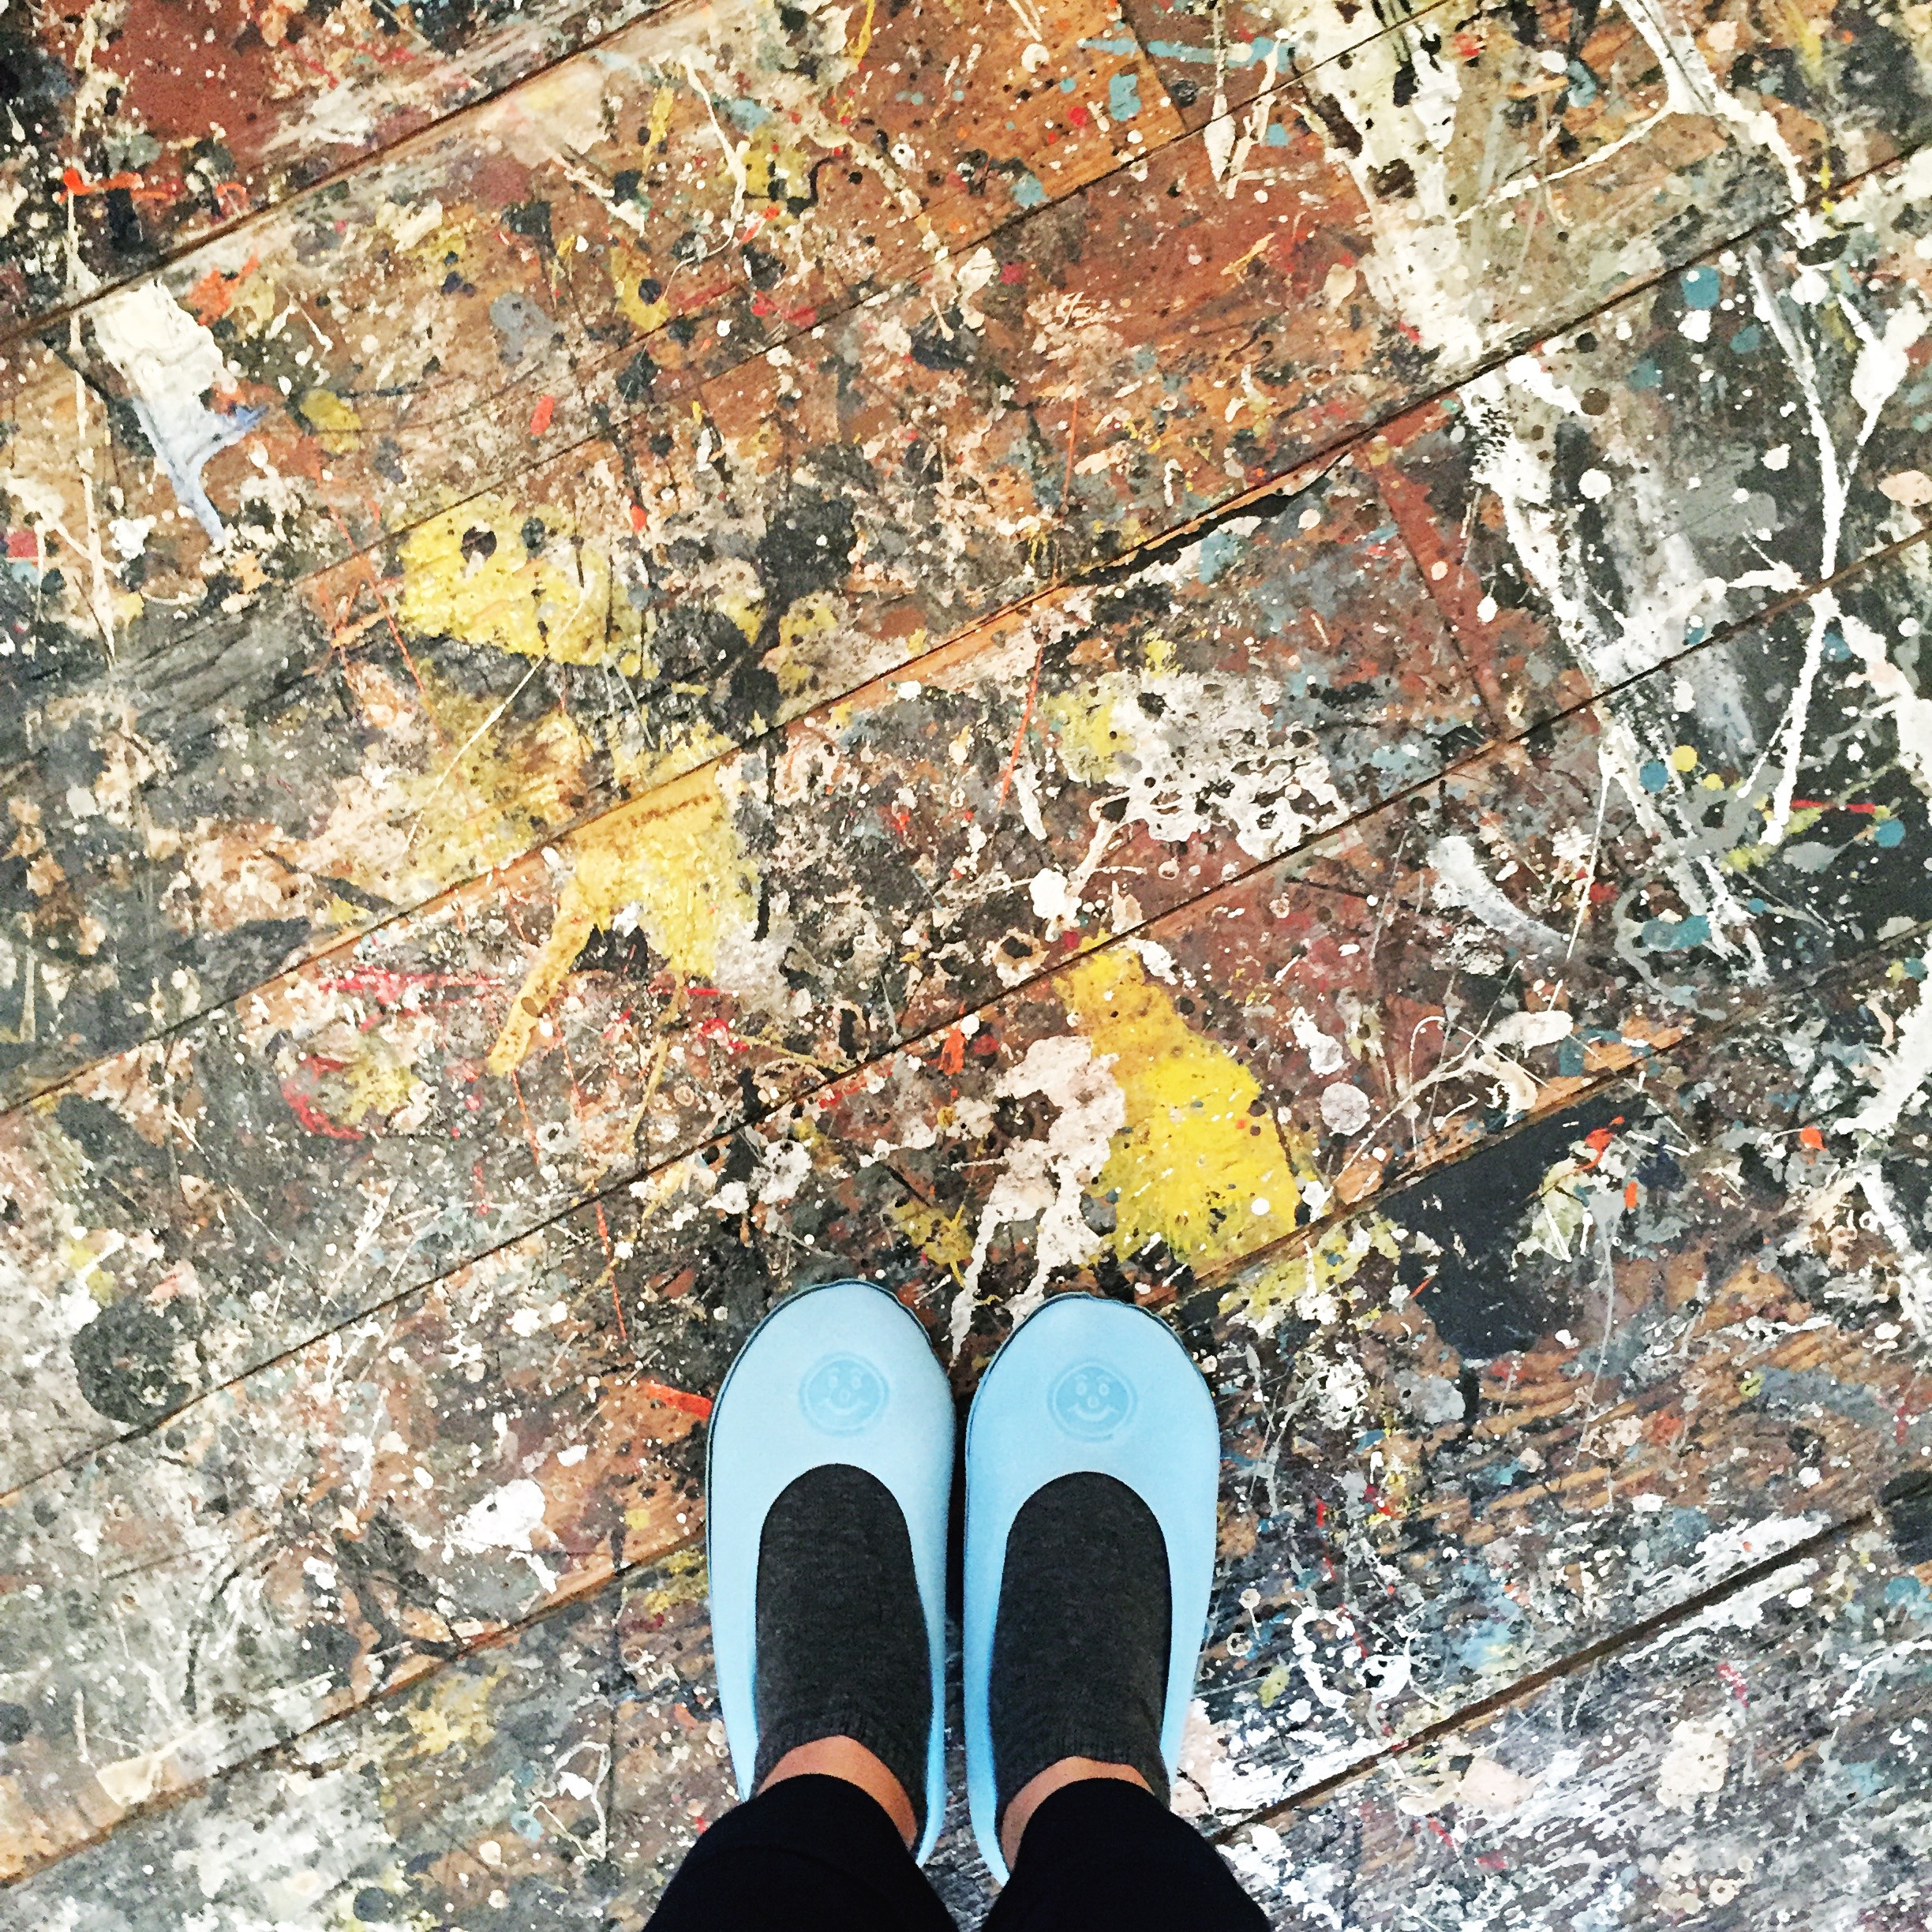 A view of my feet standing on the Pollock splattered floor. The booties are to protect the surface, which by themselves are a work of art.